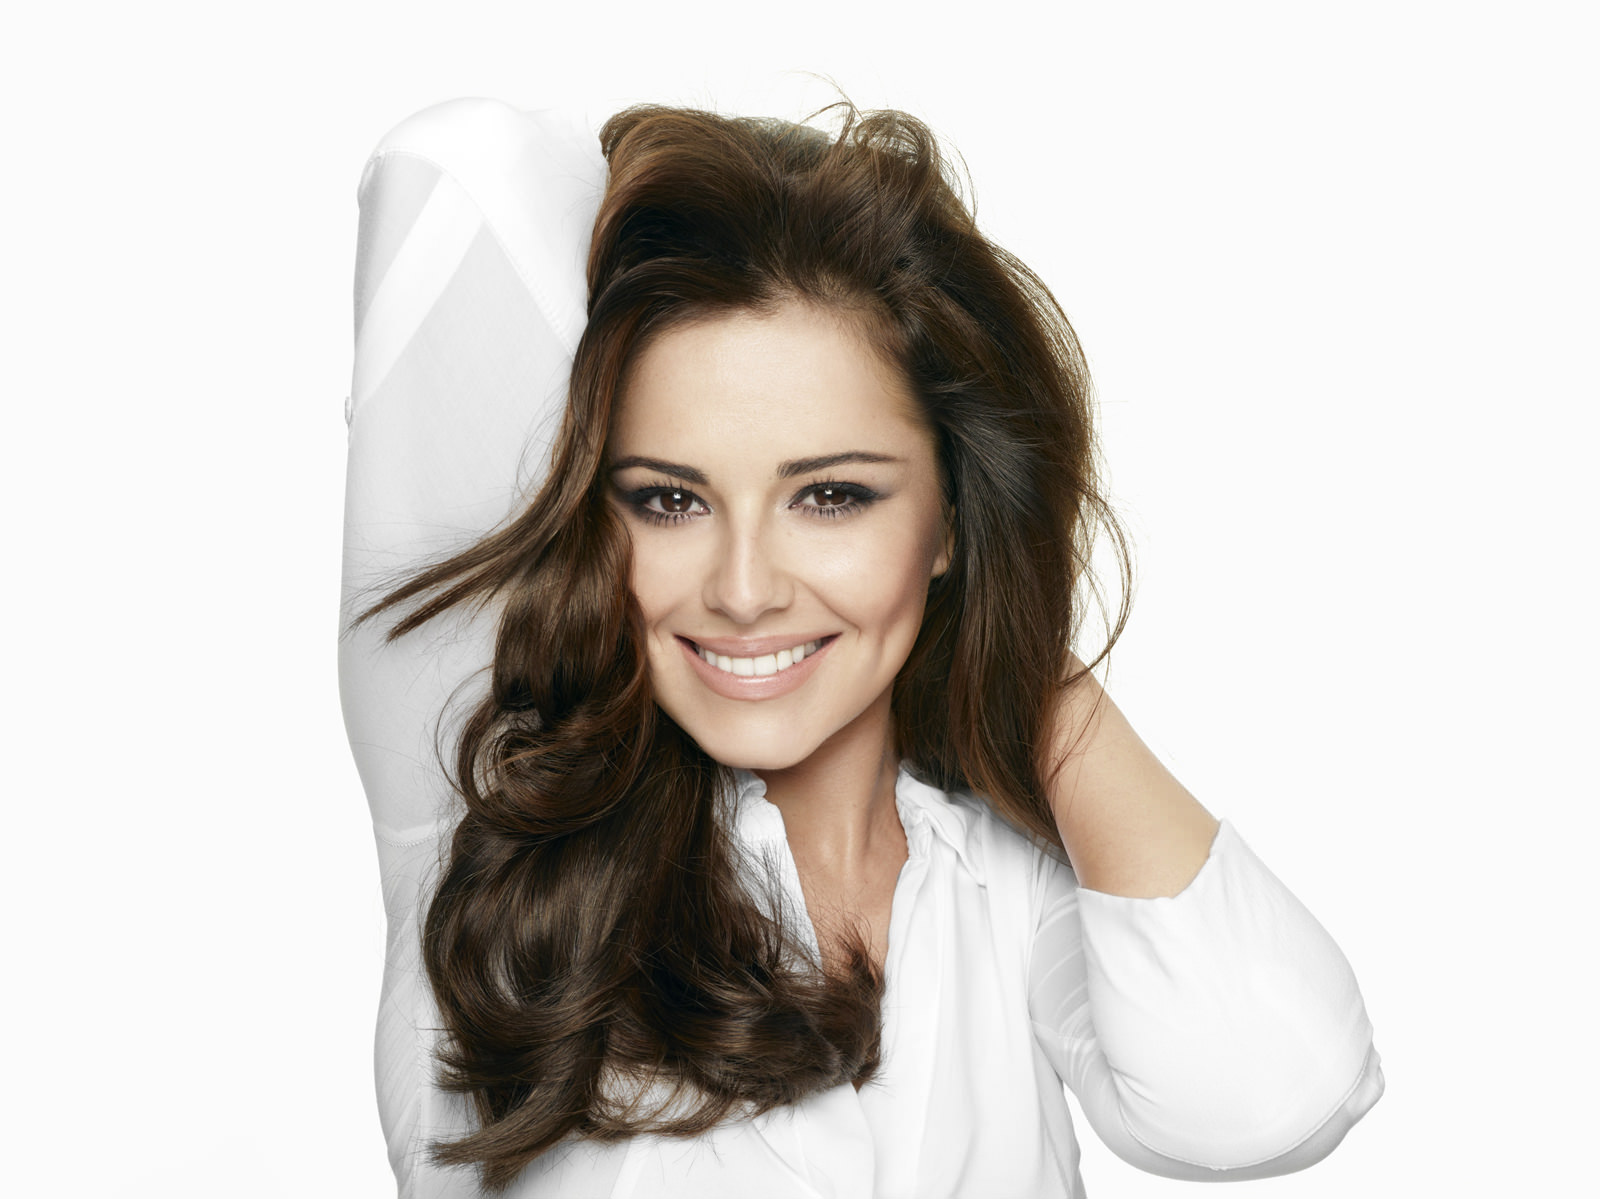 Cheryl Cole Photo Gallery